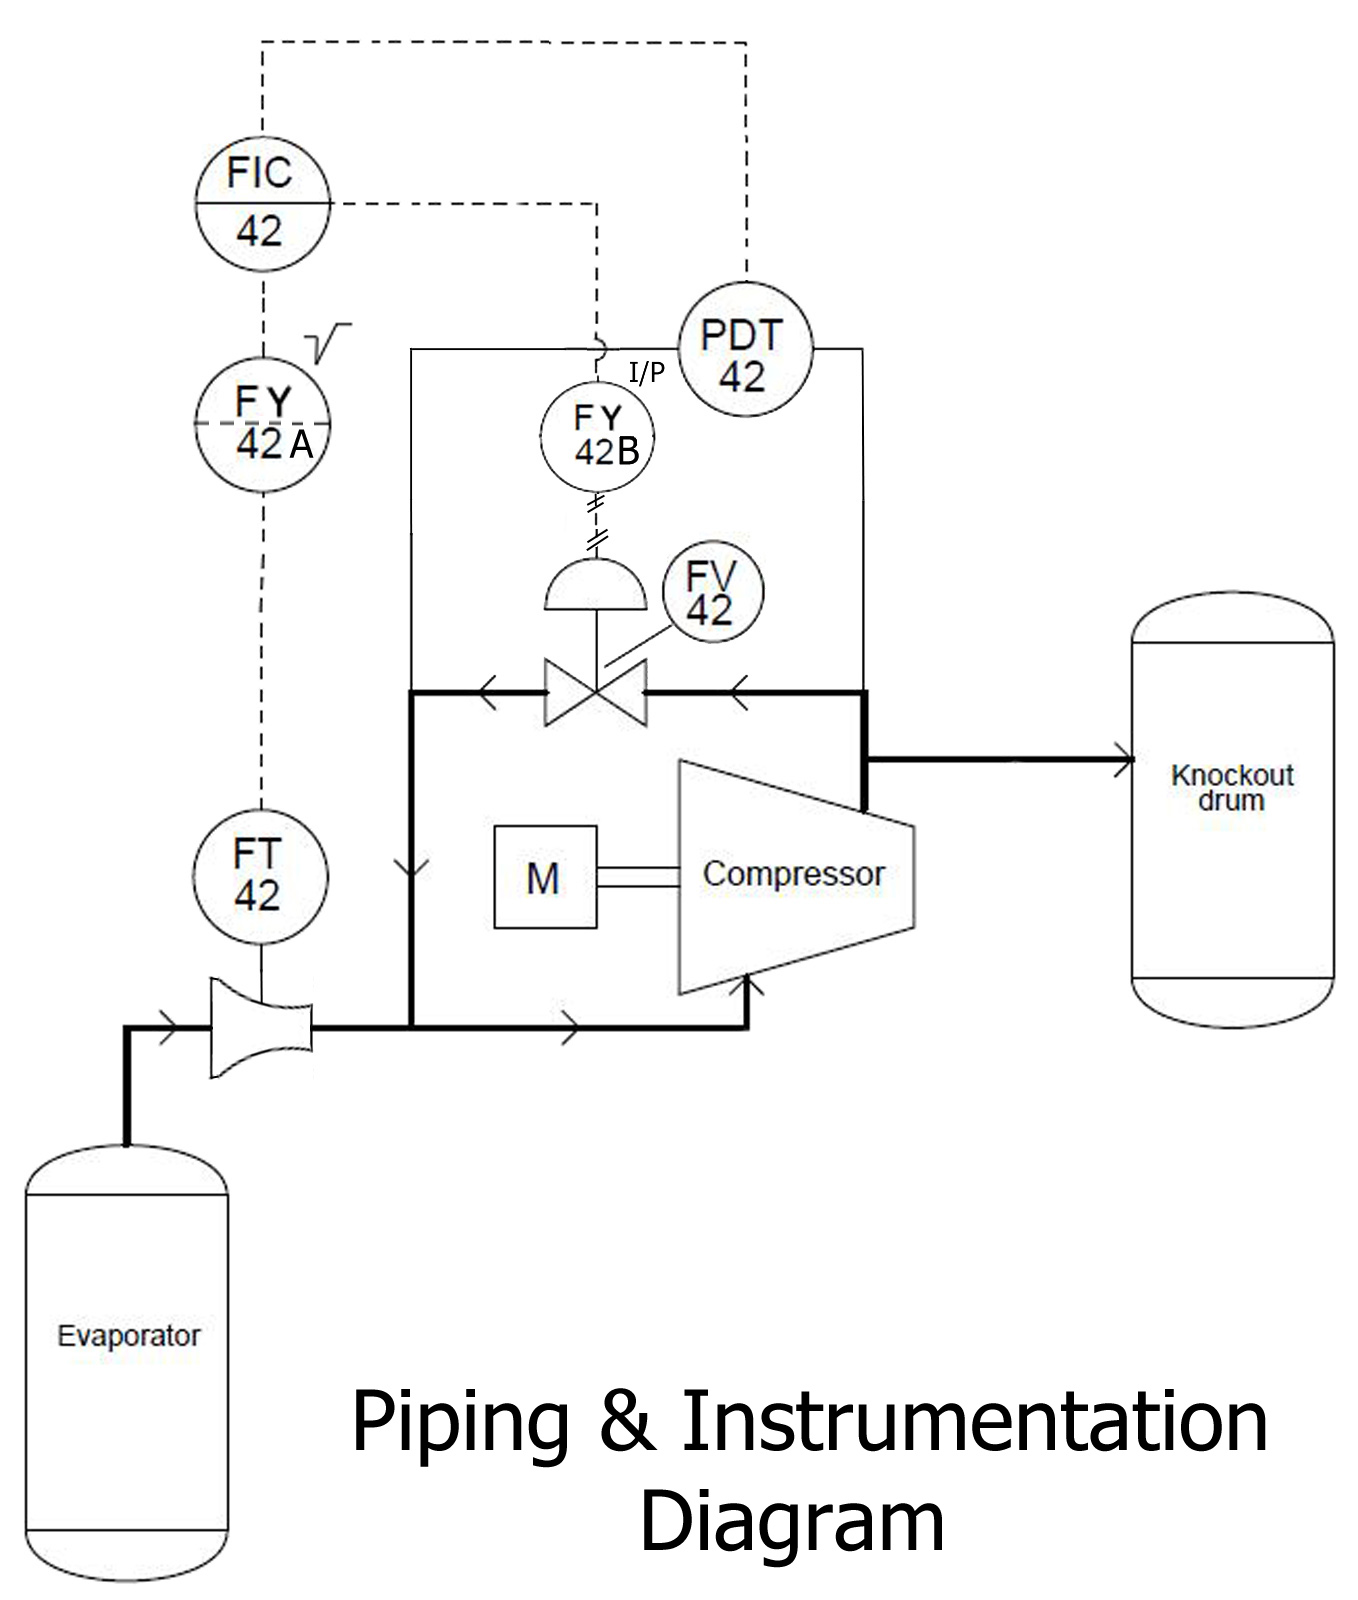 Differential Pressure Switch Symbol Pid Piping Instrumentation Diagram Images And Diagrams